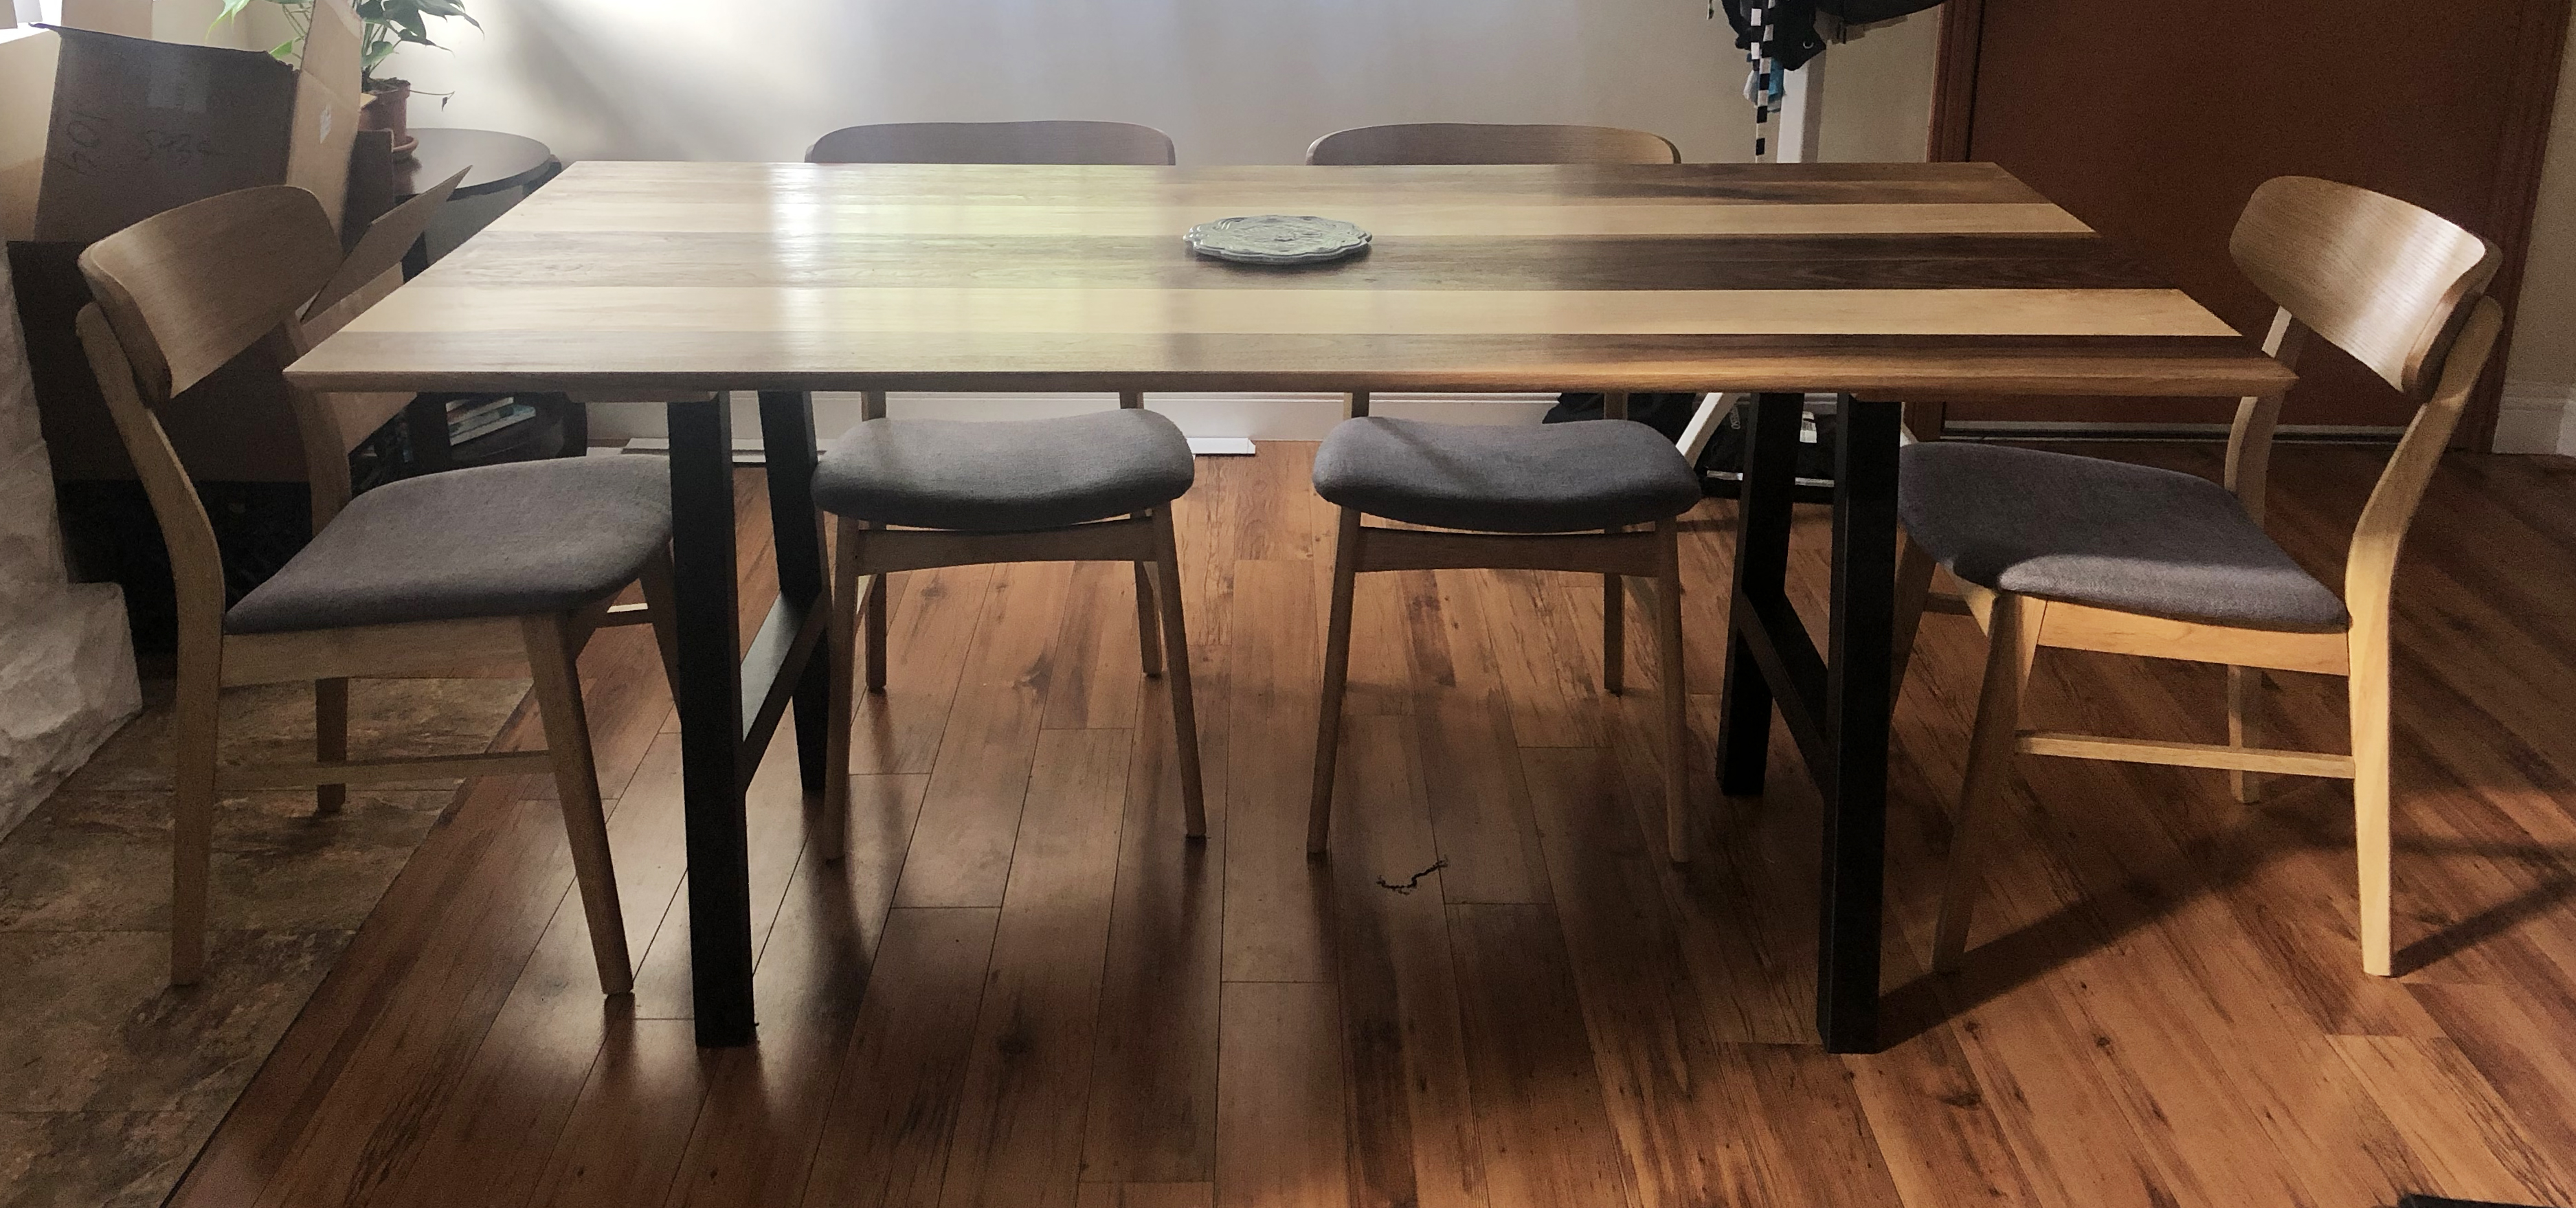 Black walnut and maple dining table (did not make chairs)